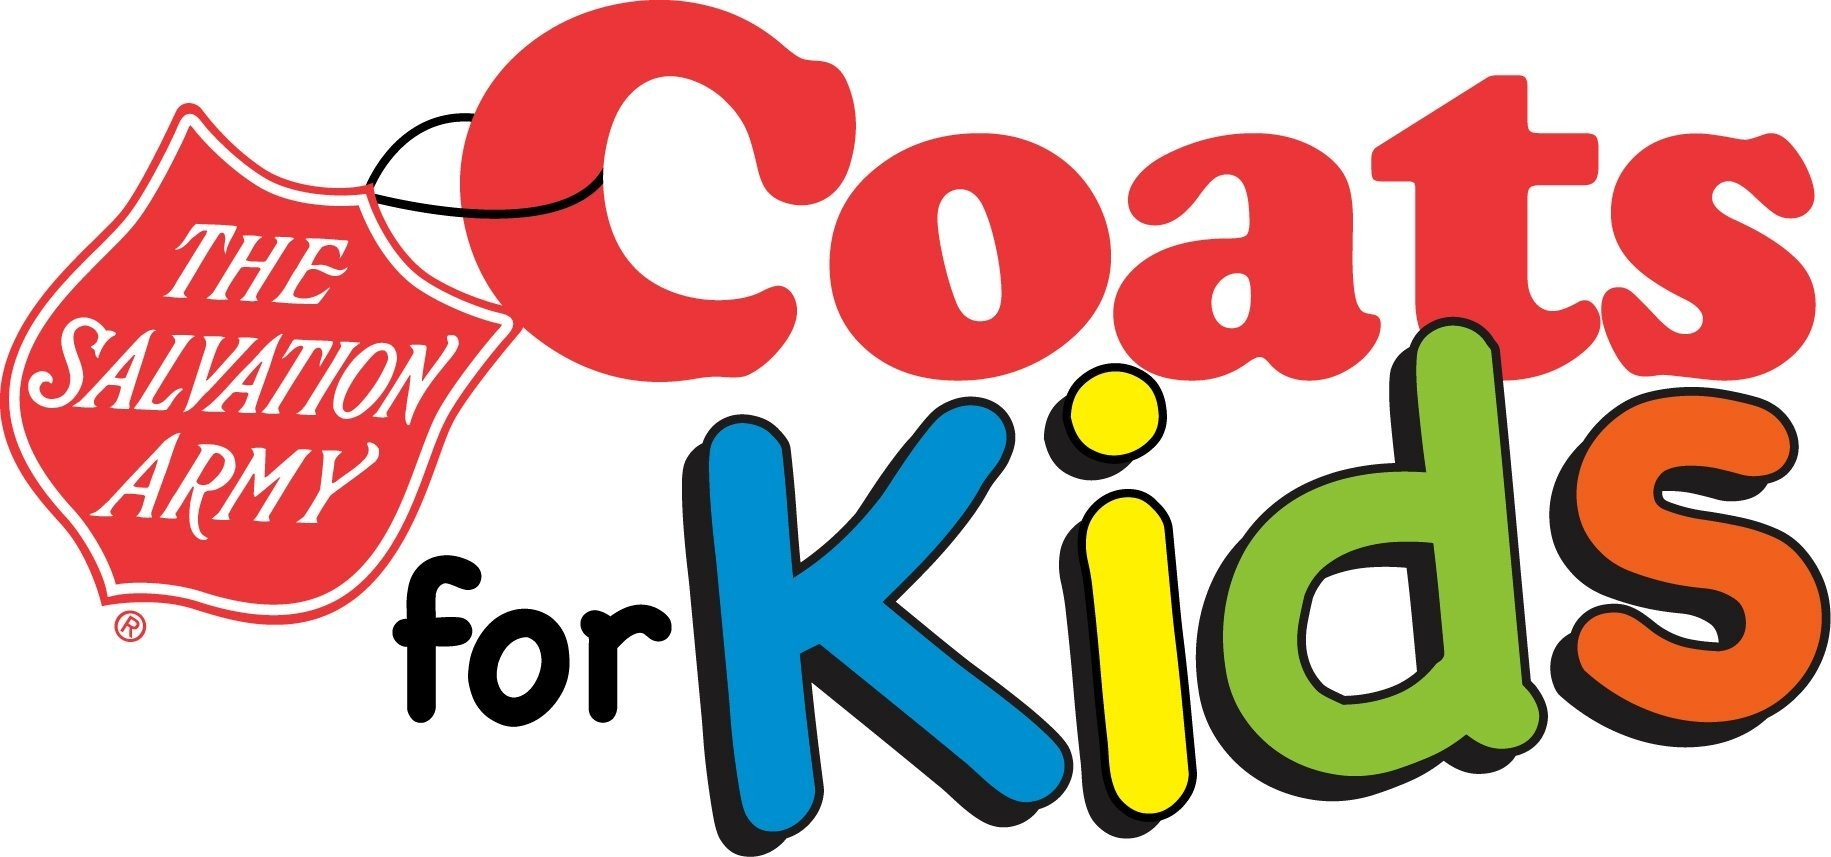 Wanted: Coats for Kids campaign needs coats of all sizes before Old Man  Winter blows into town - masslive.com